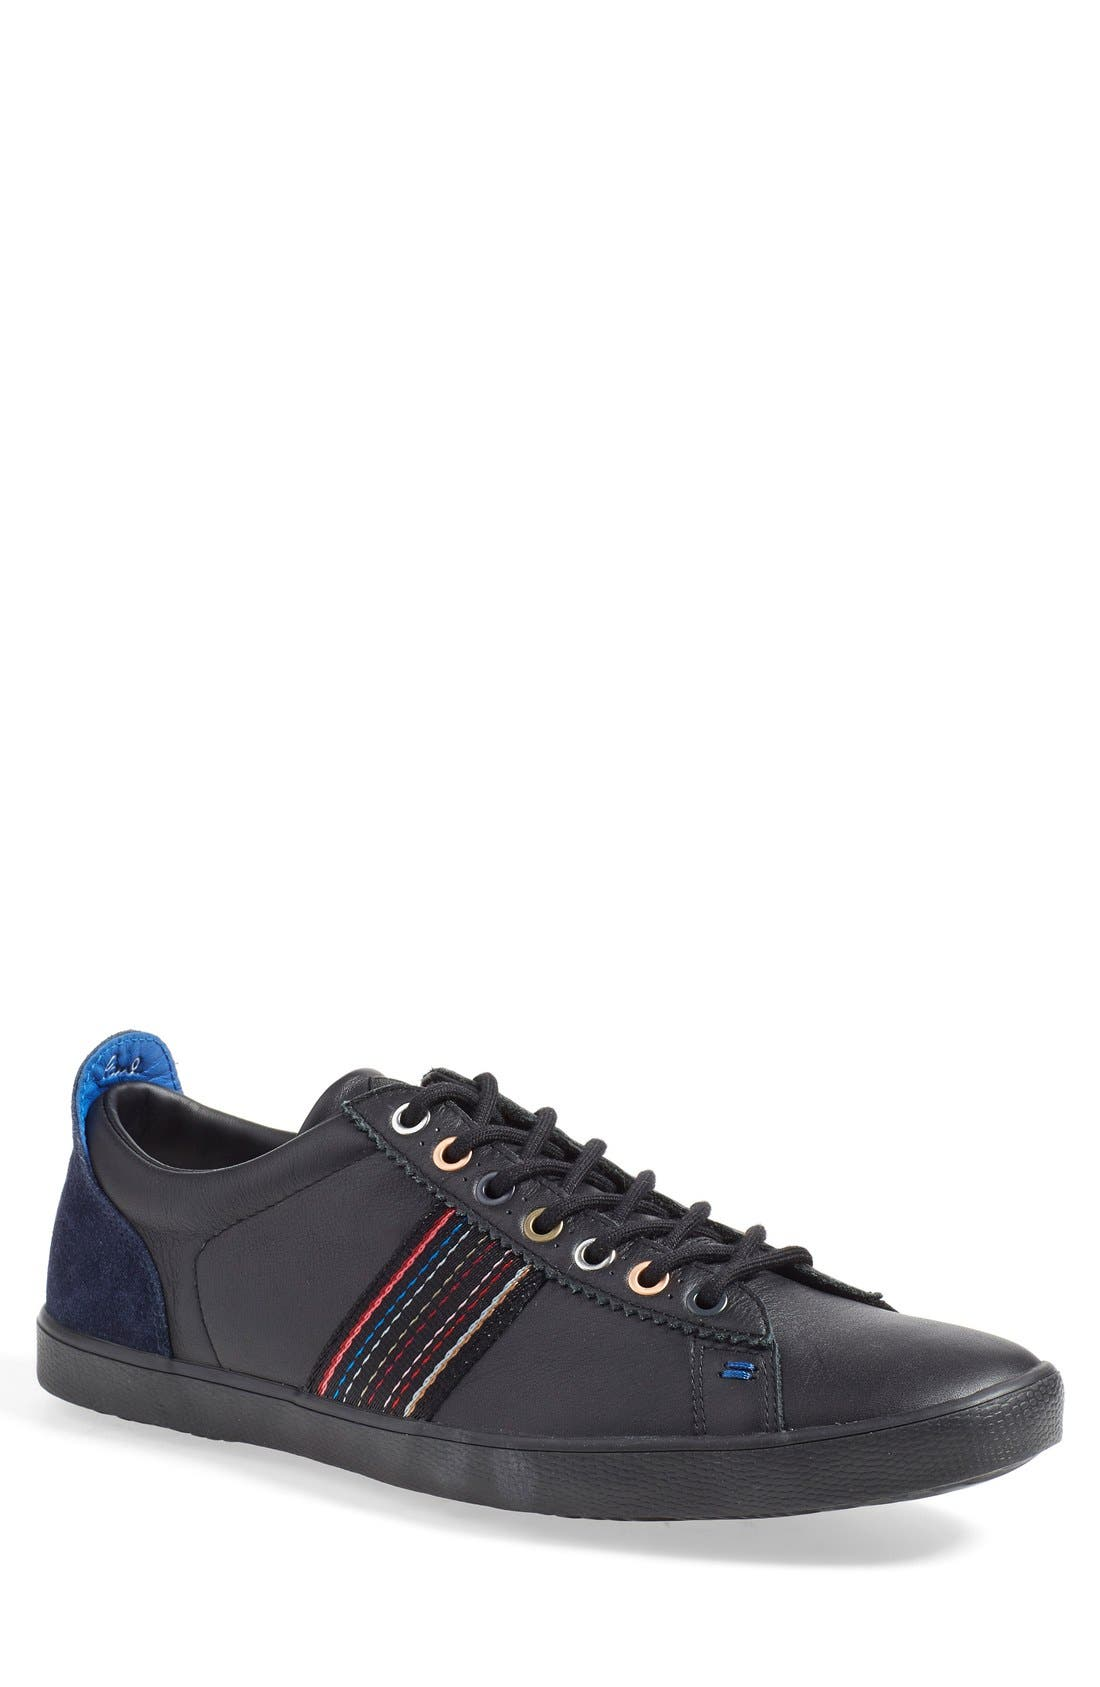 Main Image - Paul Smith 'Osmo' Sneaker (Men)